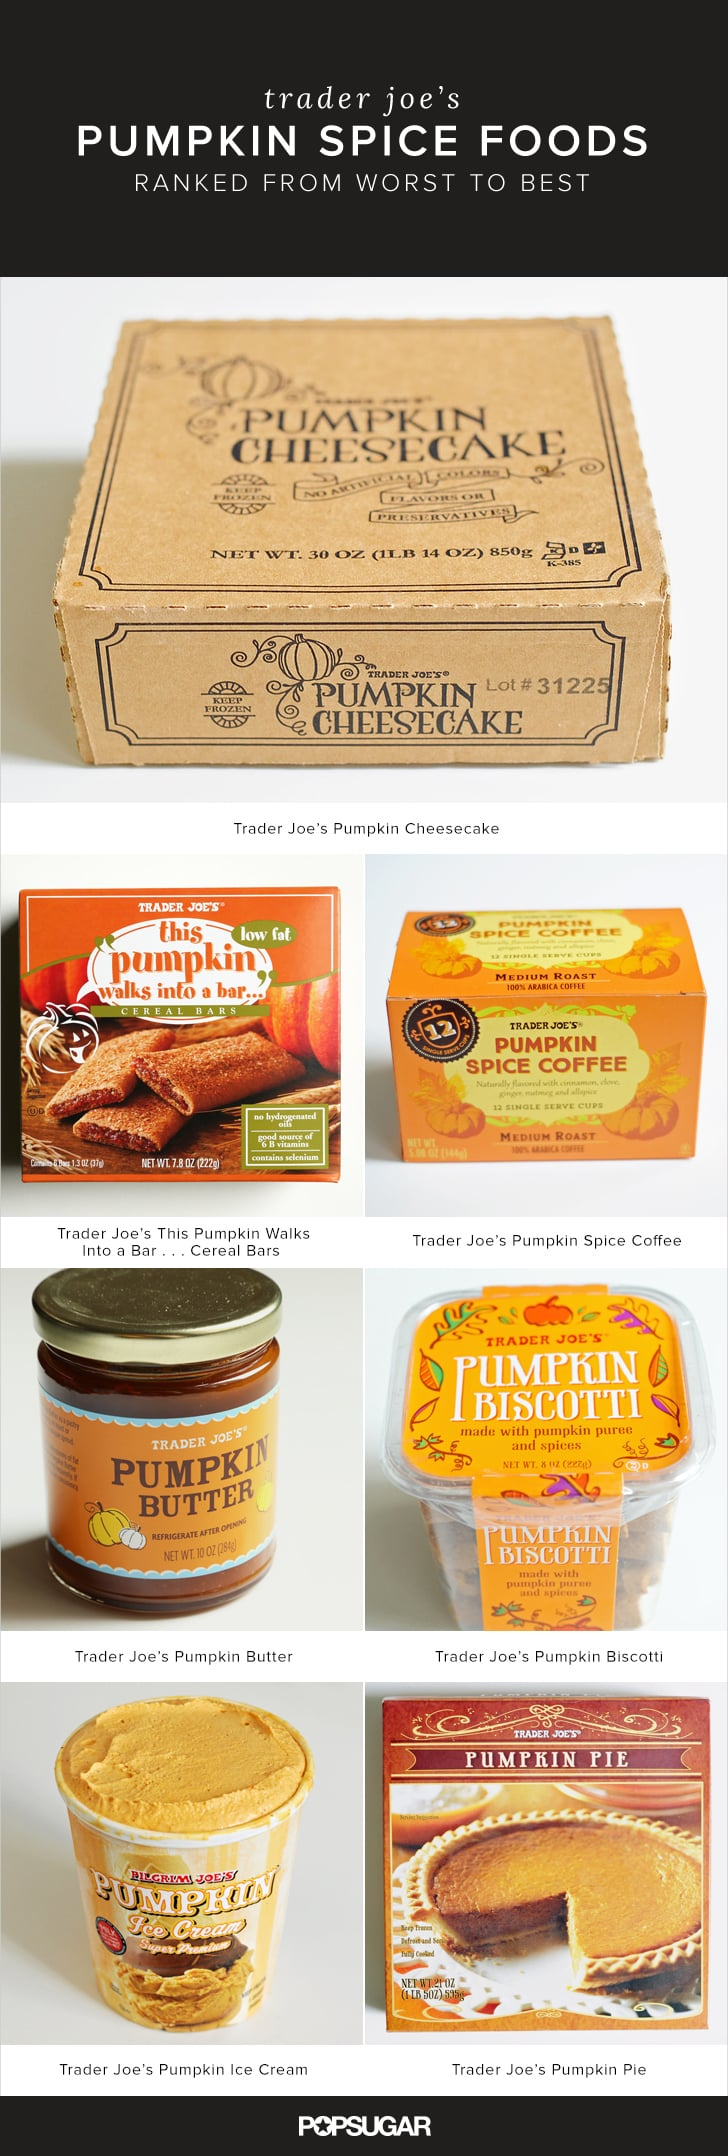 22 Trader Joe's Pumpkin Spice Foods, Ranked From Worst to Best